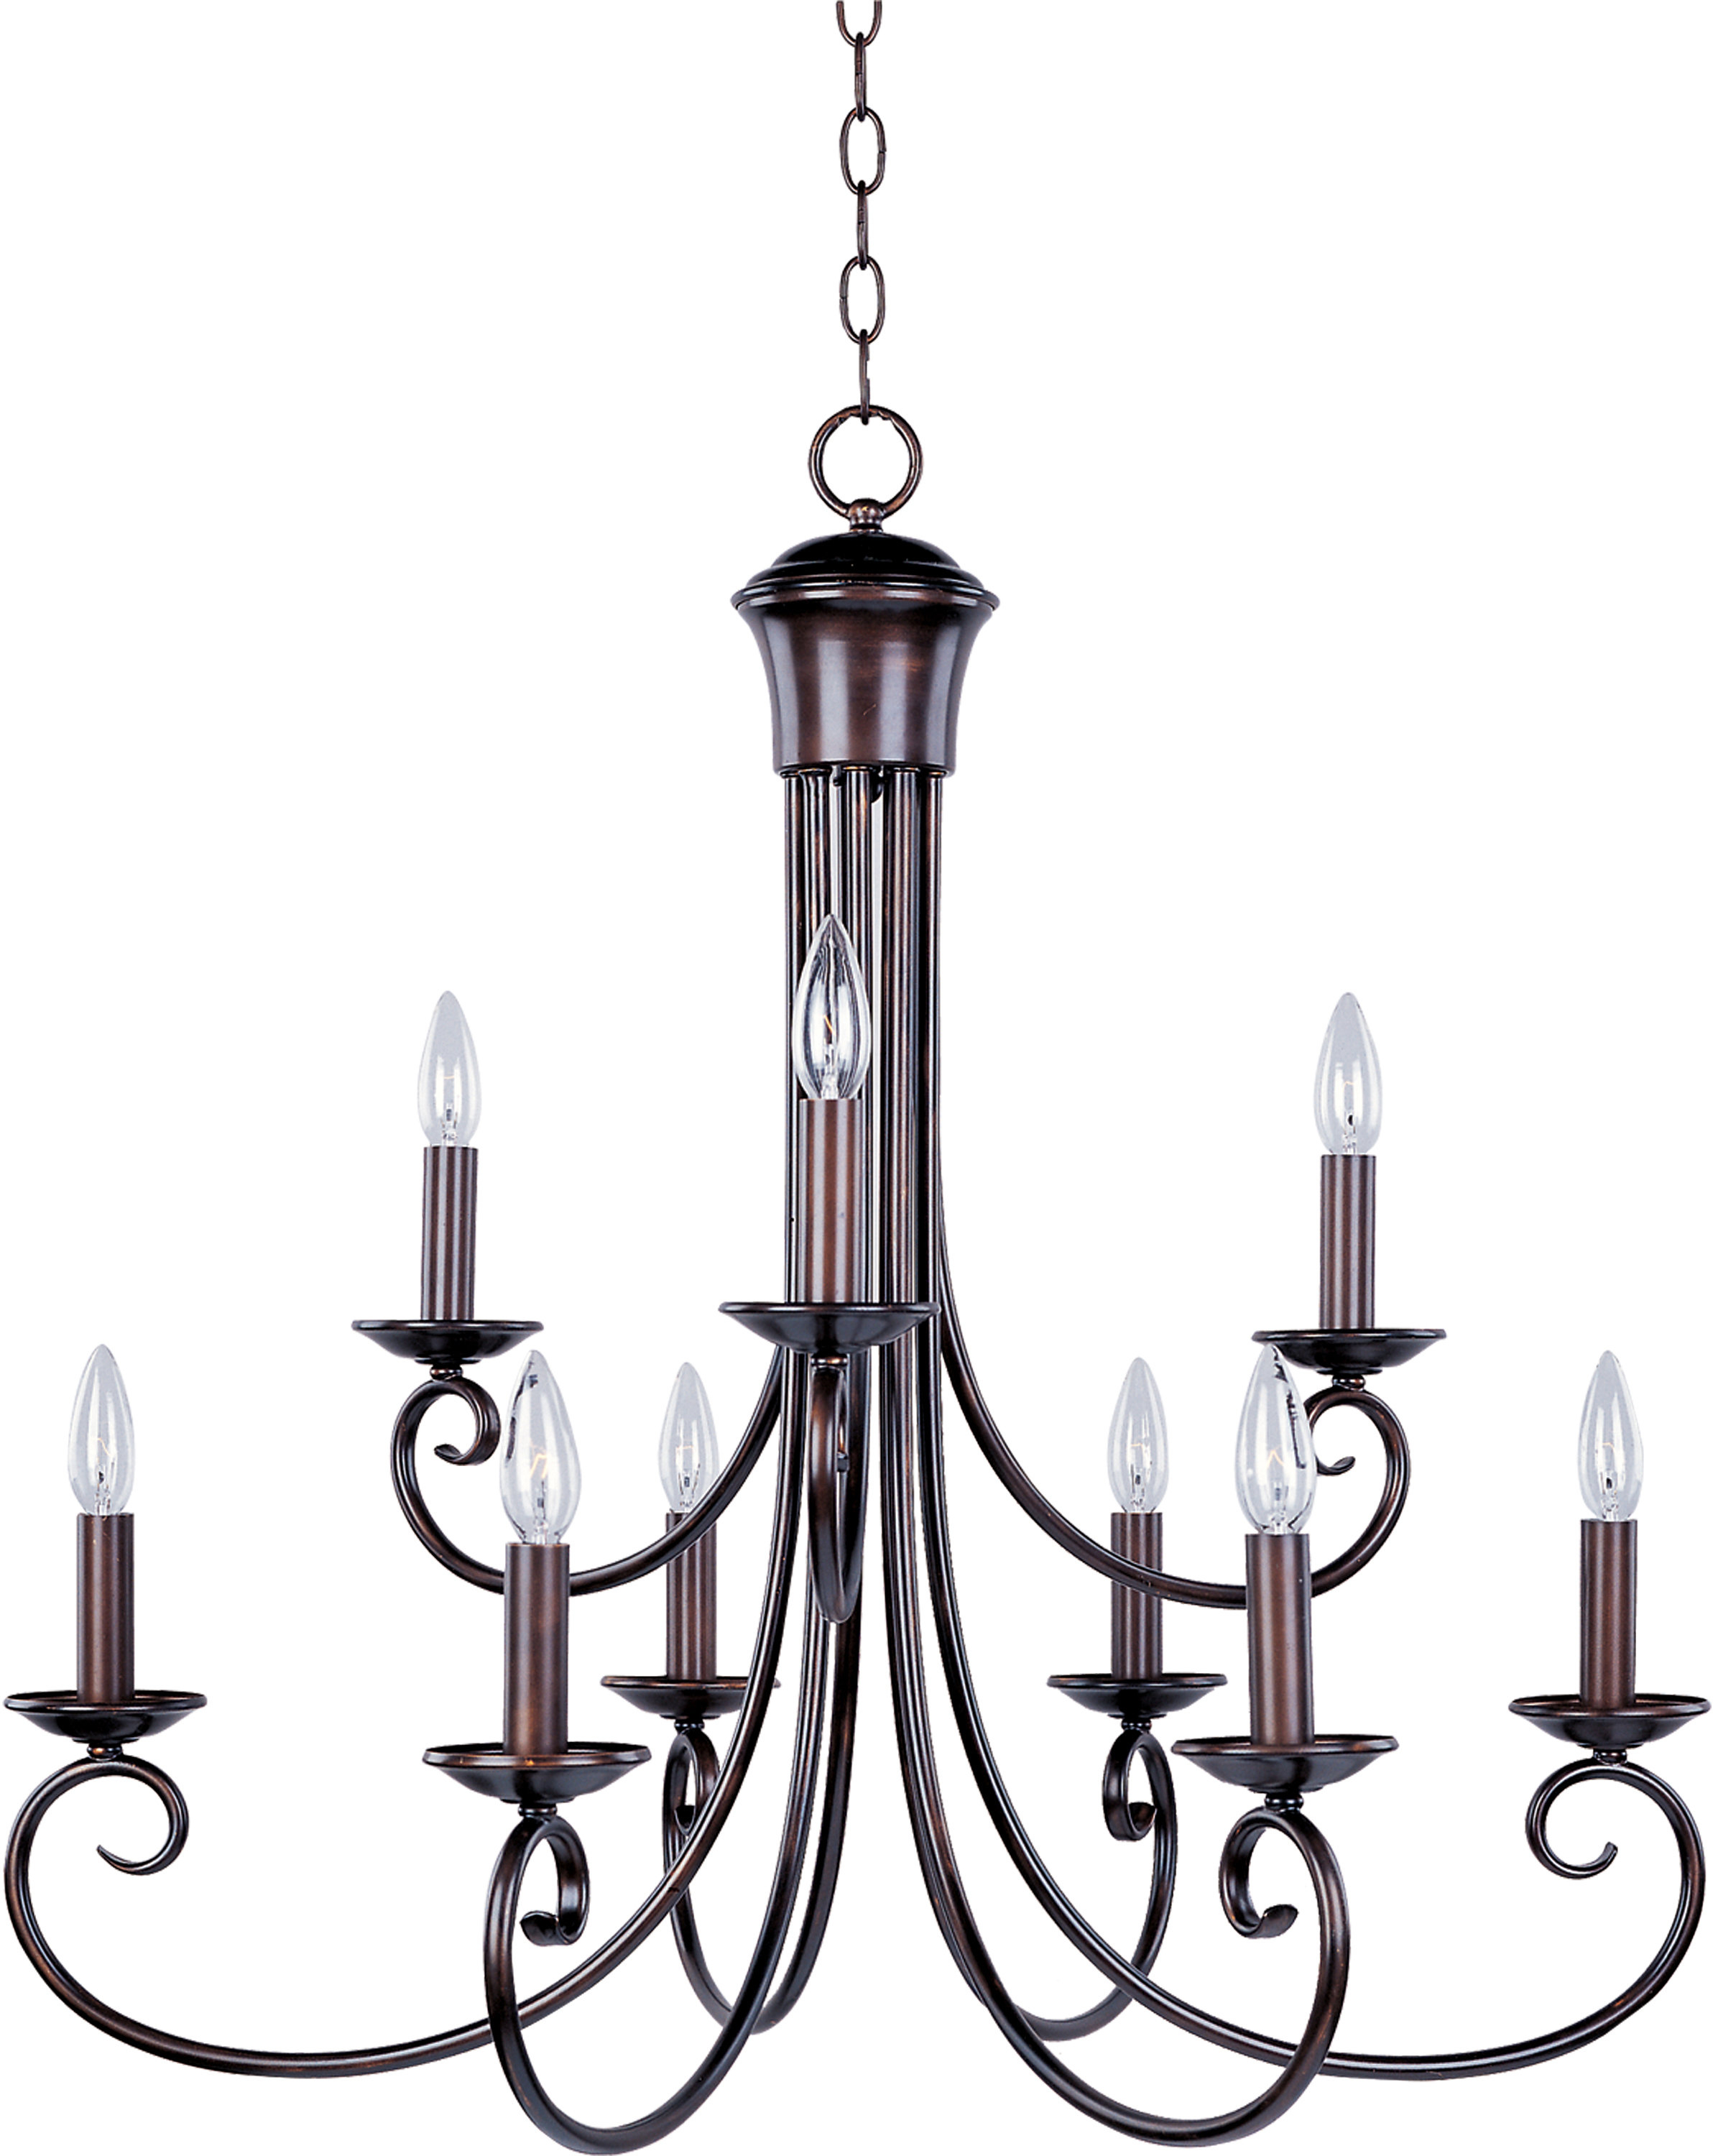 Kenedy 9 Light Candle Style Chandeliers Pertaining To Most Recently Released Kenedy 9 Light Candle Style Chandelier (View 5 of 20)